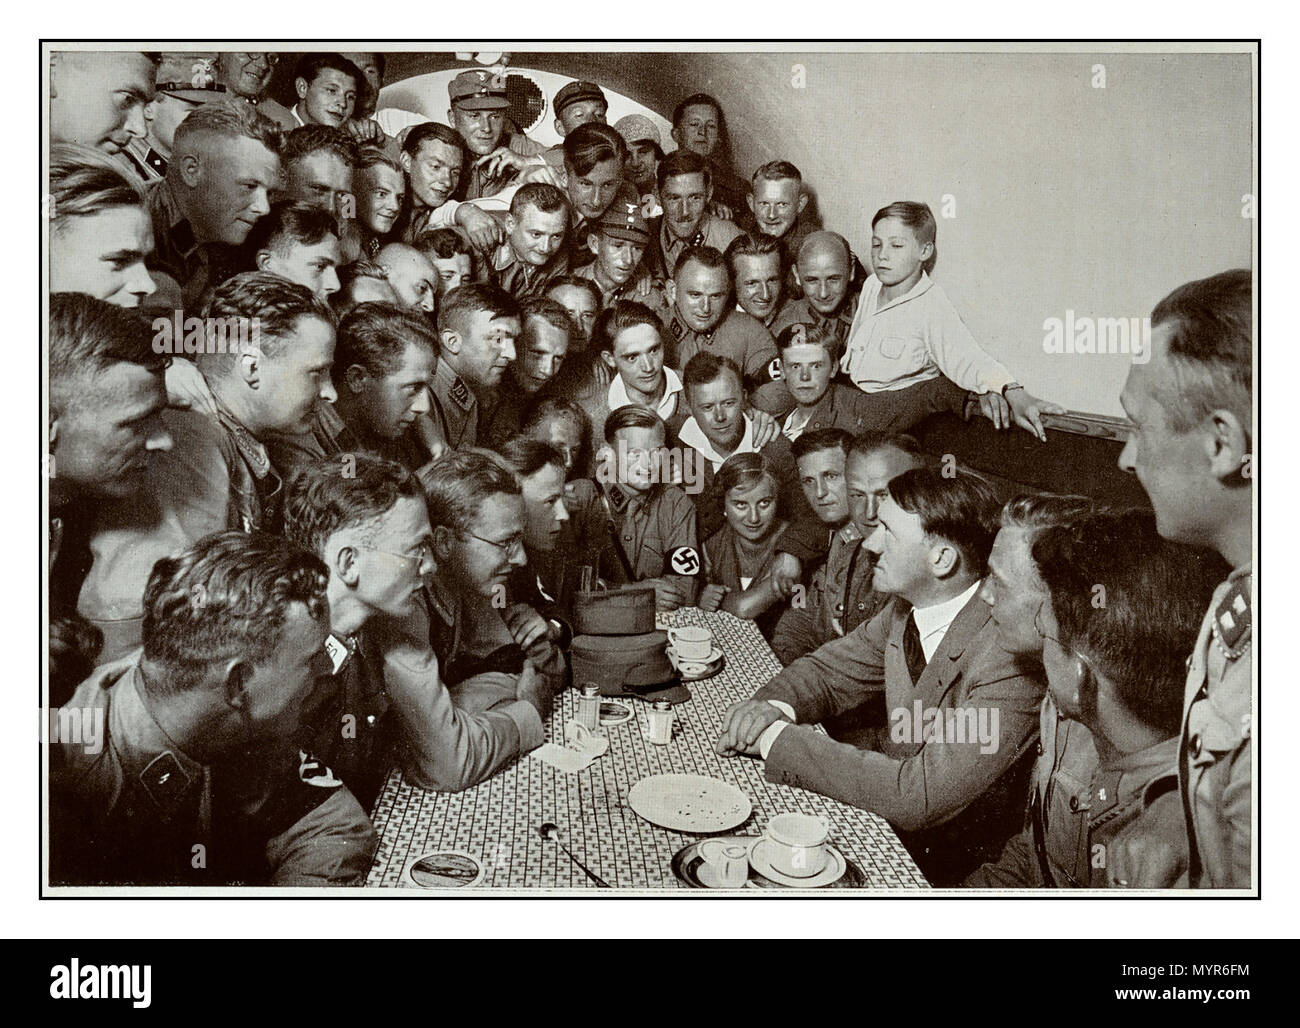 1930's Adolf Hitler speaks to a group of young messianic followers in the basement canteen of the Munich Brown House, a hostel for Nazi SA young men Munich Germany - Stock Image